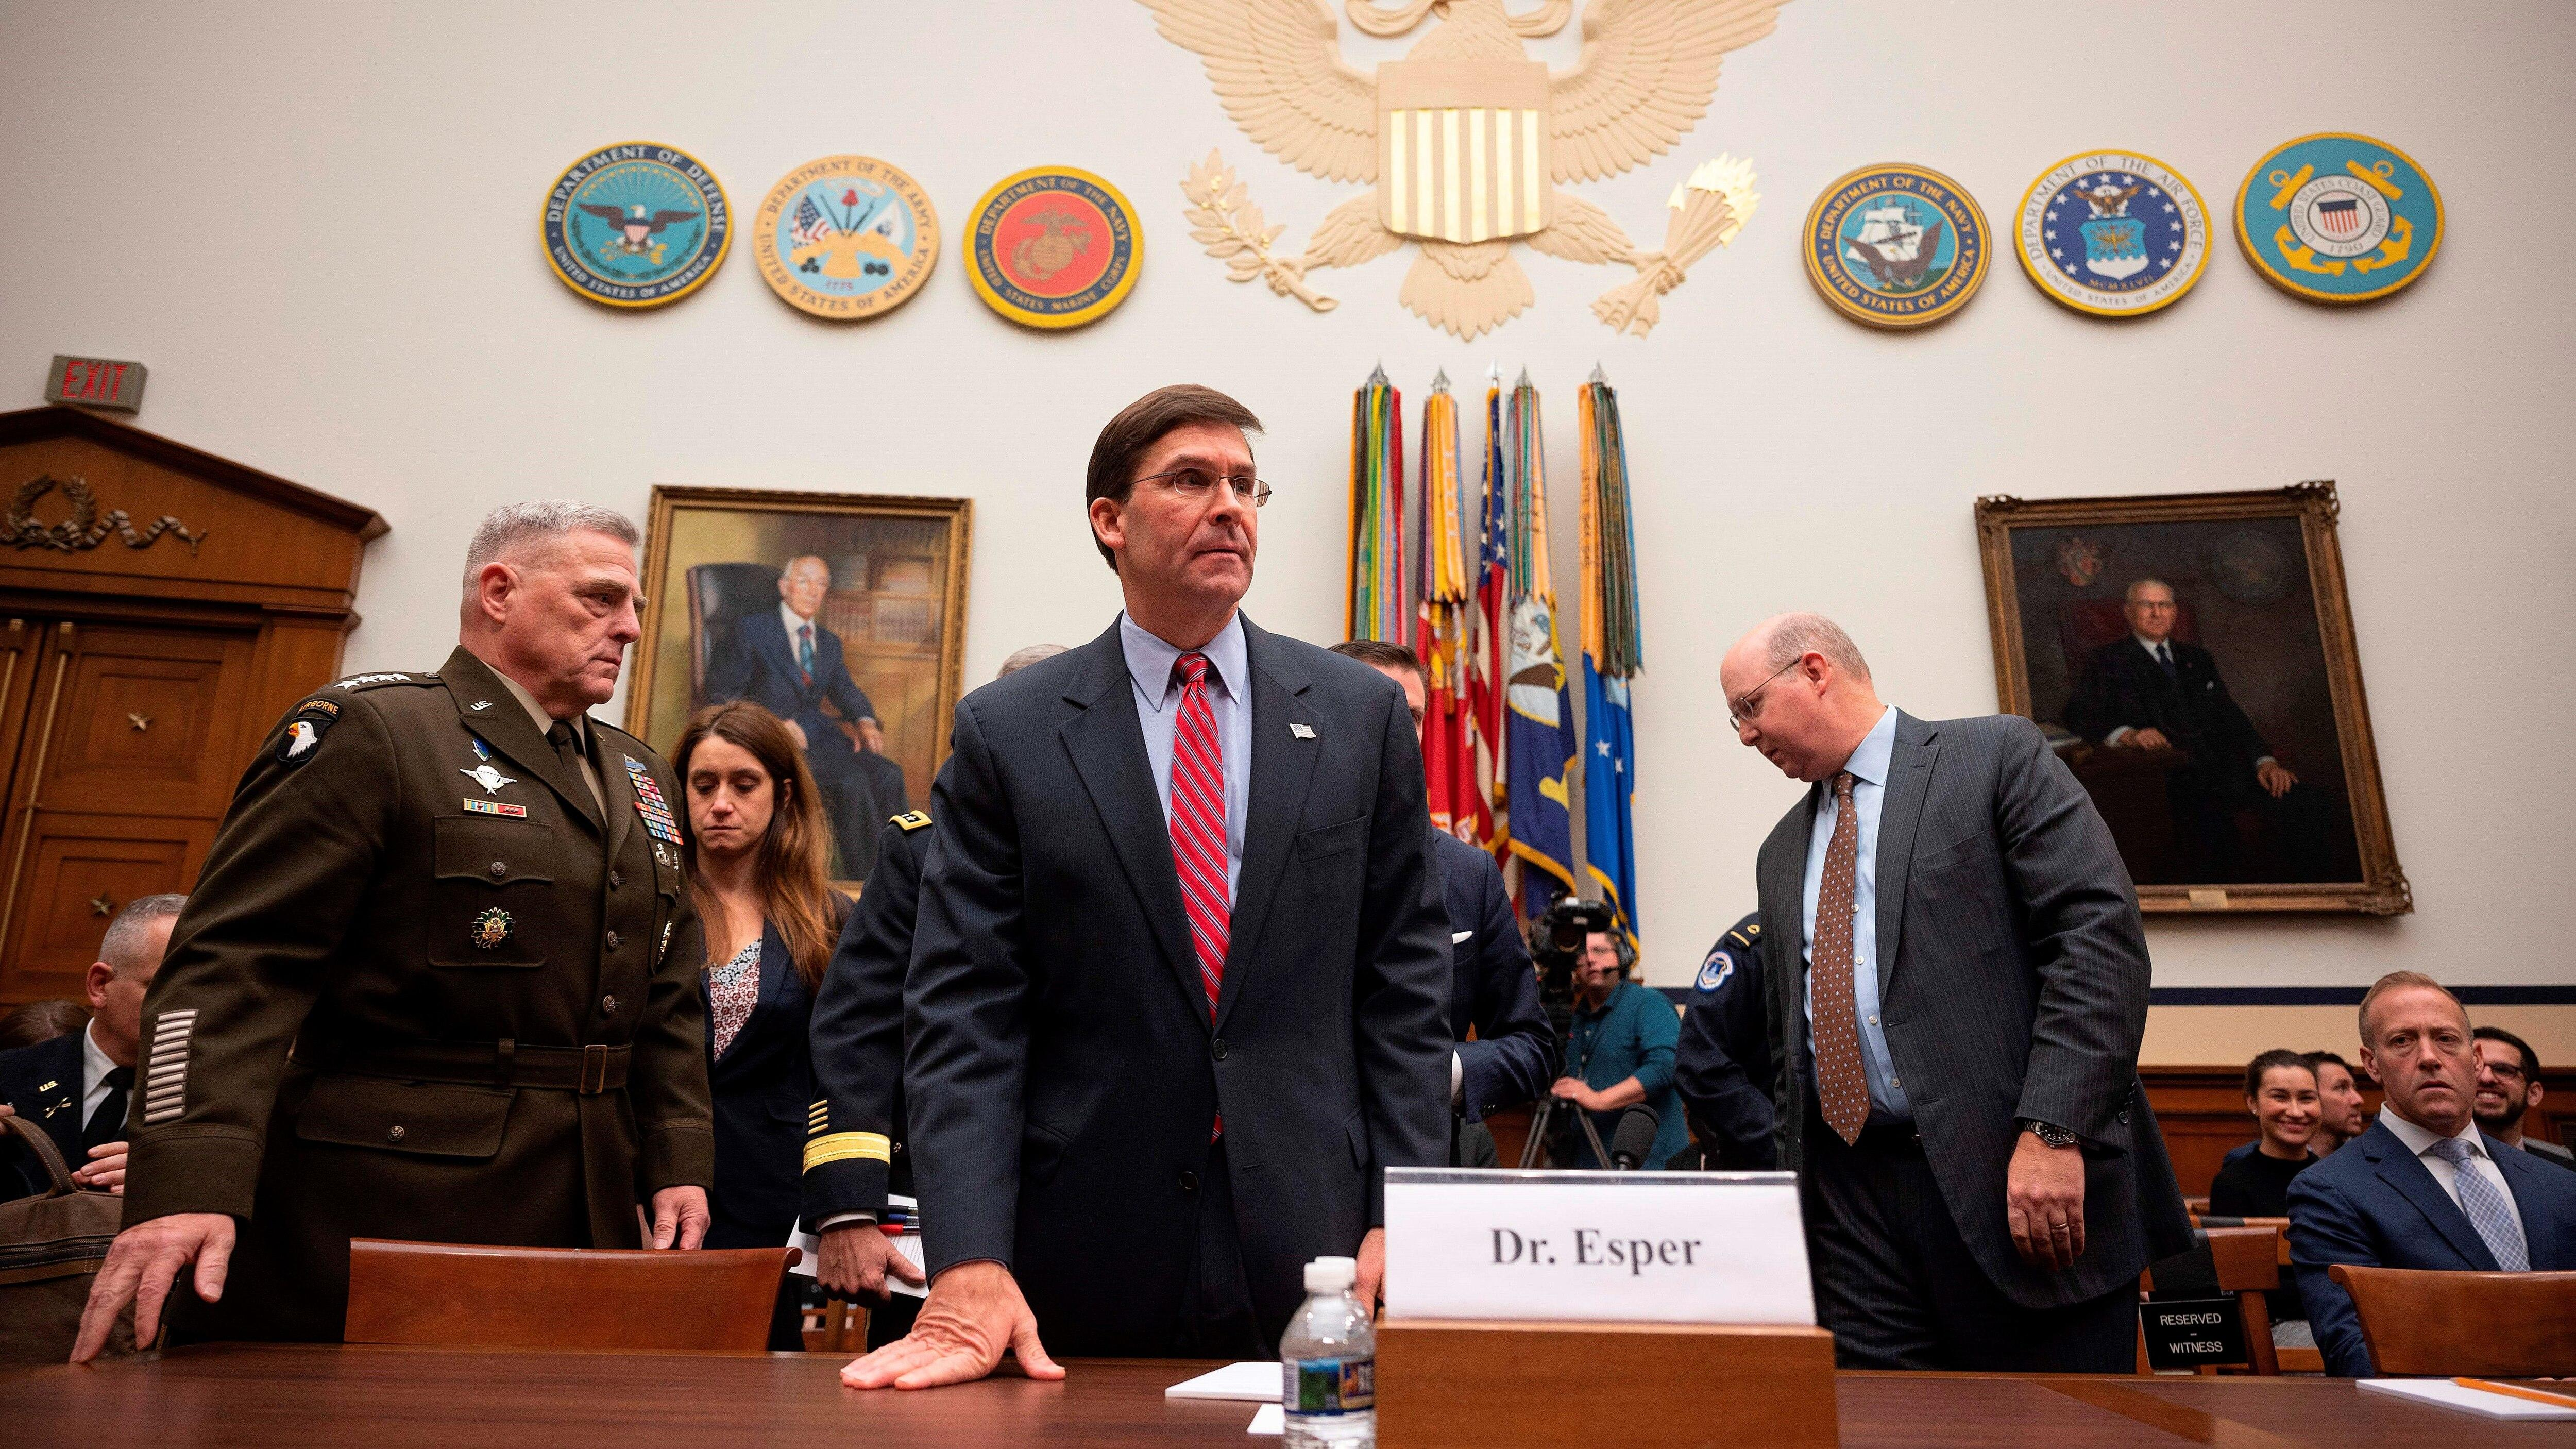 Defense committee chairman expresses 'profound frustration' with Esper